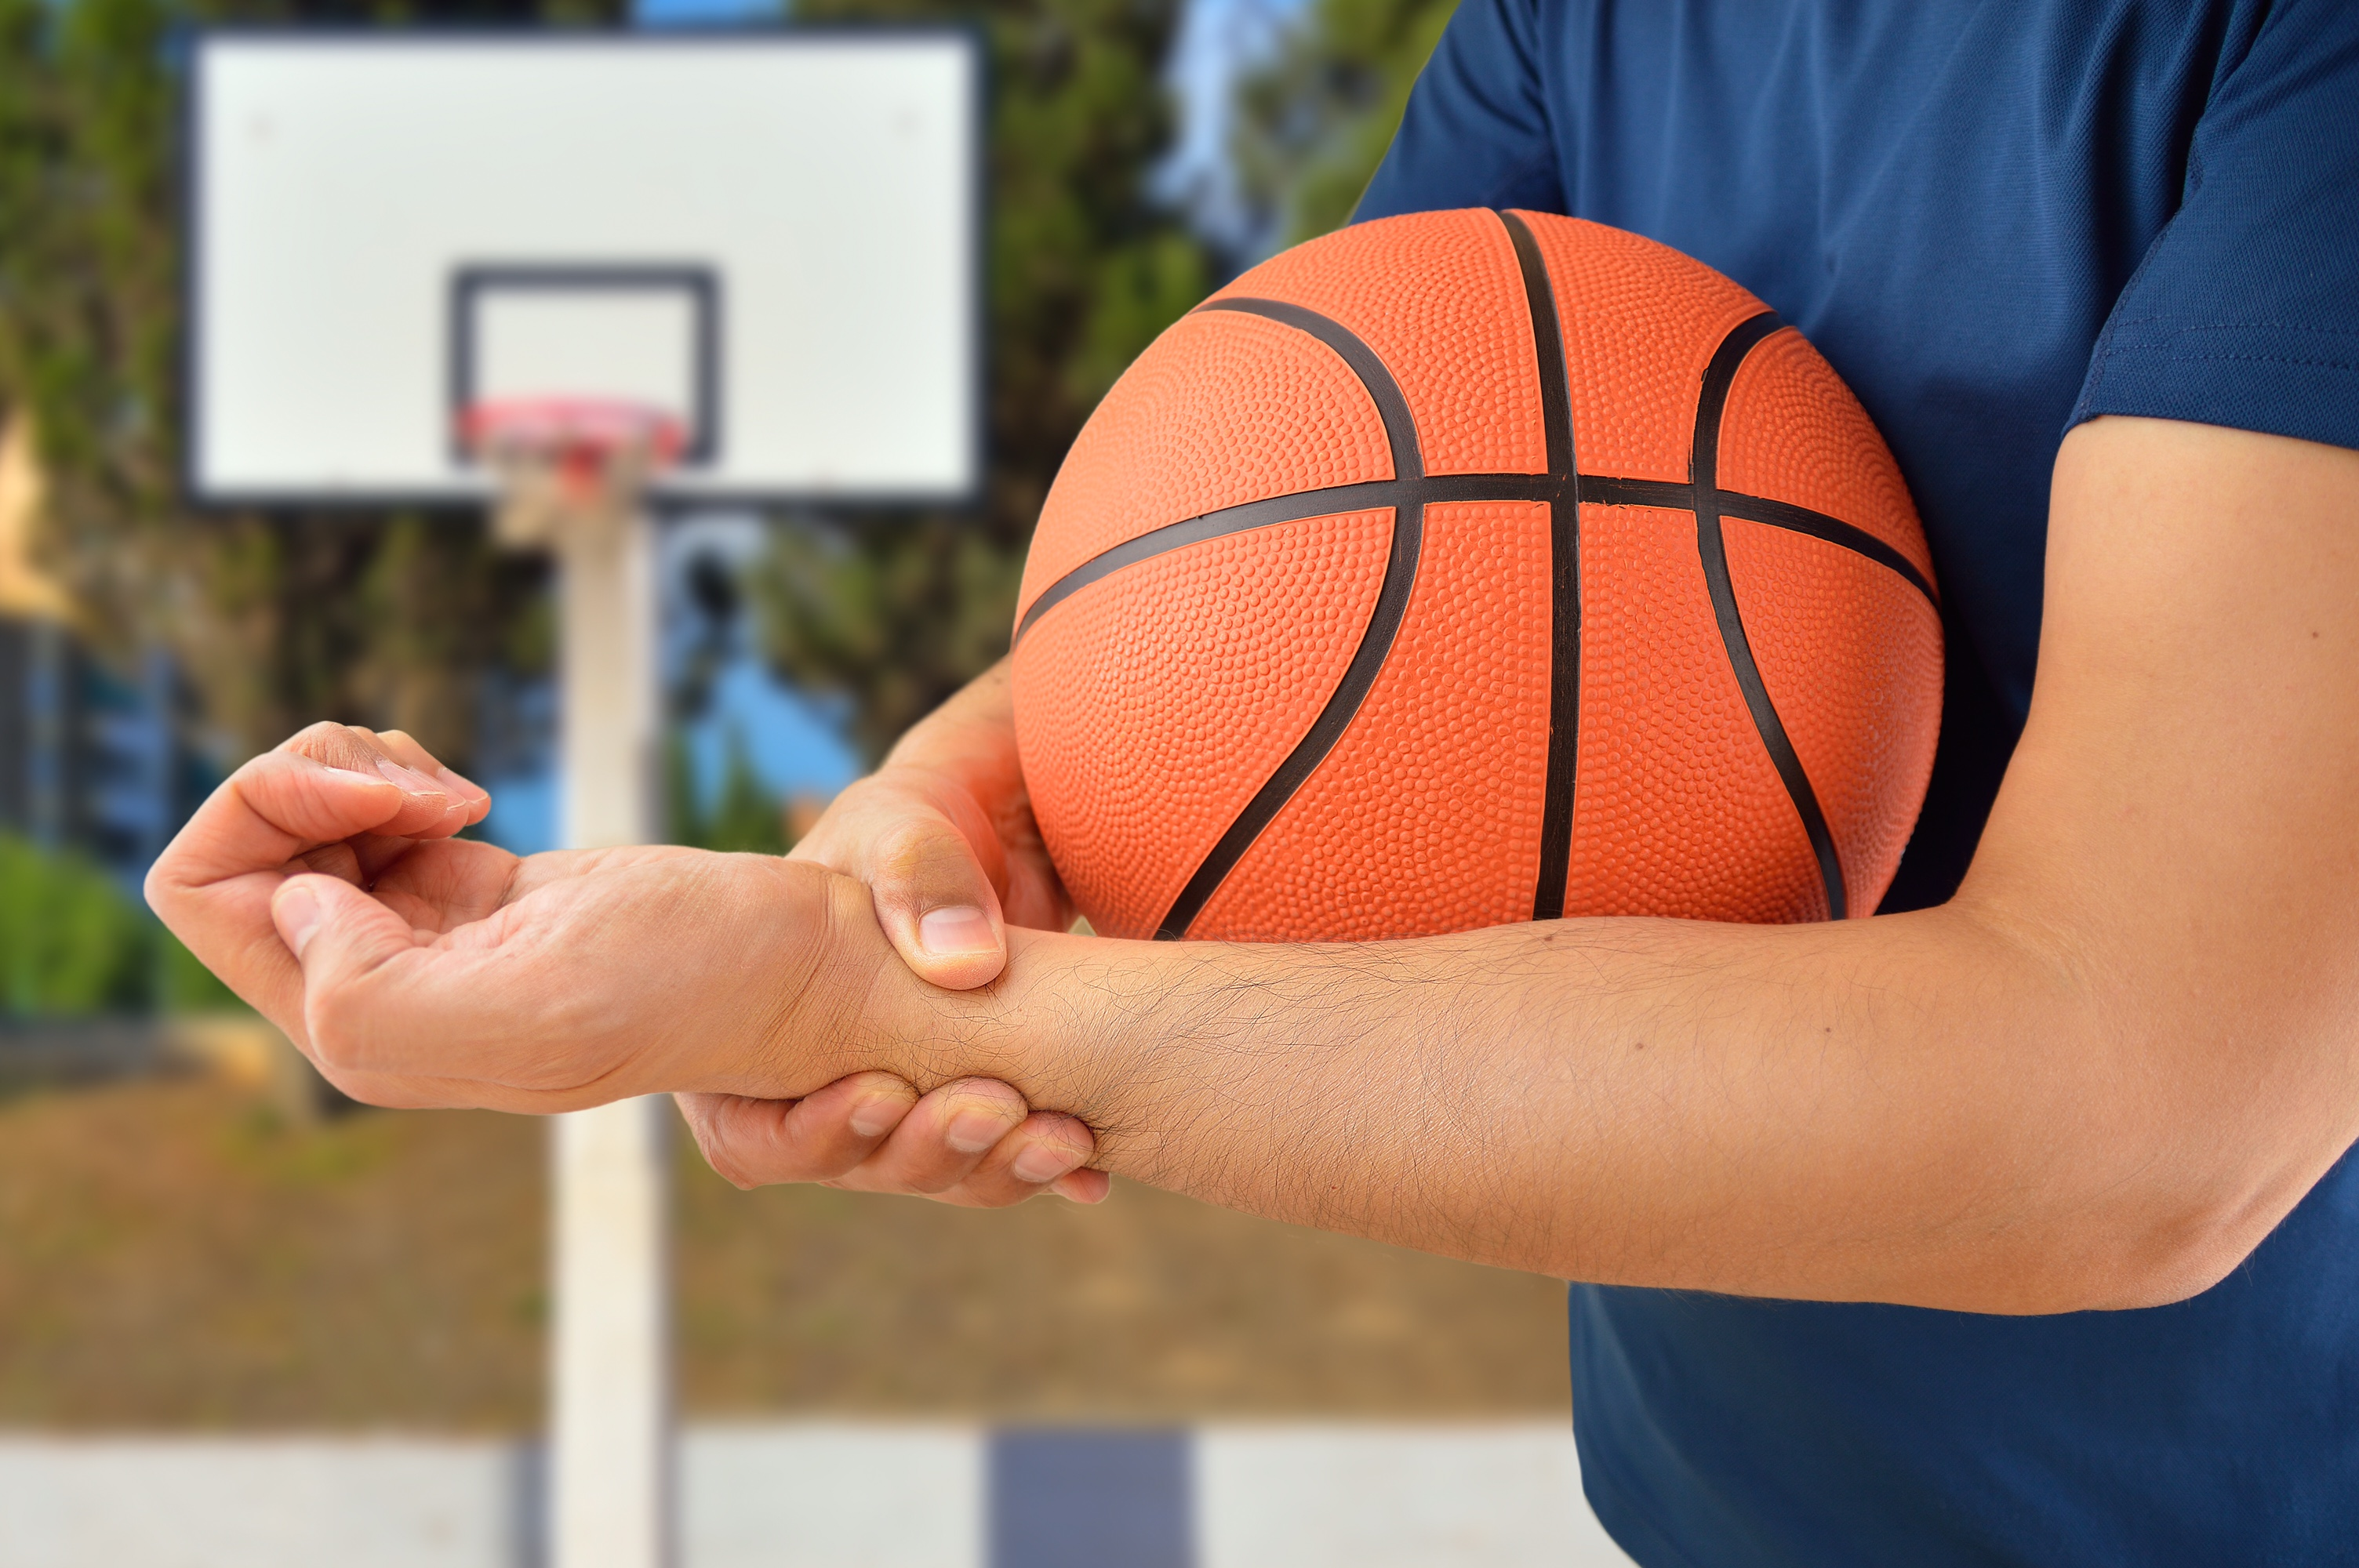 Basketball player with wrist pain